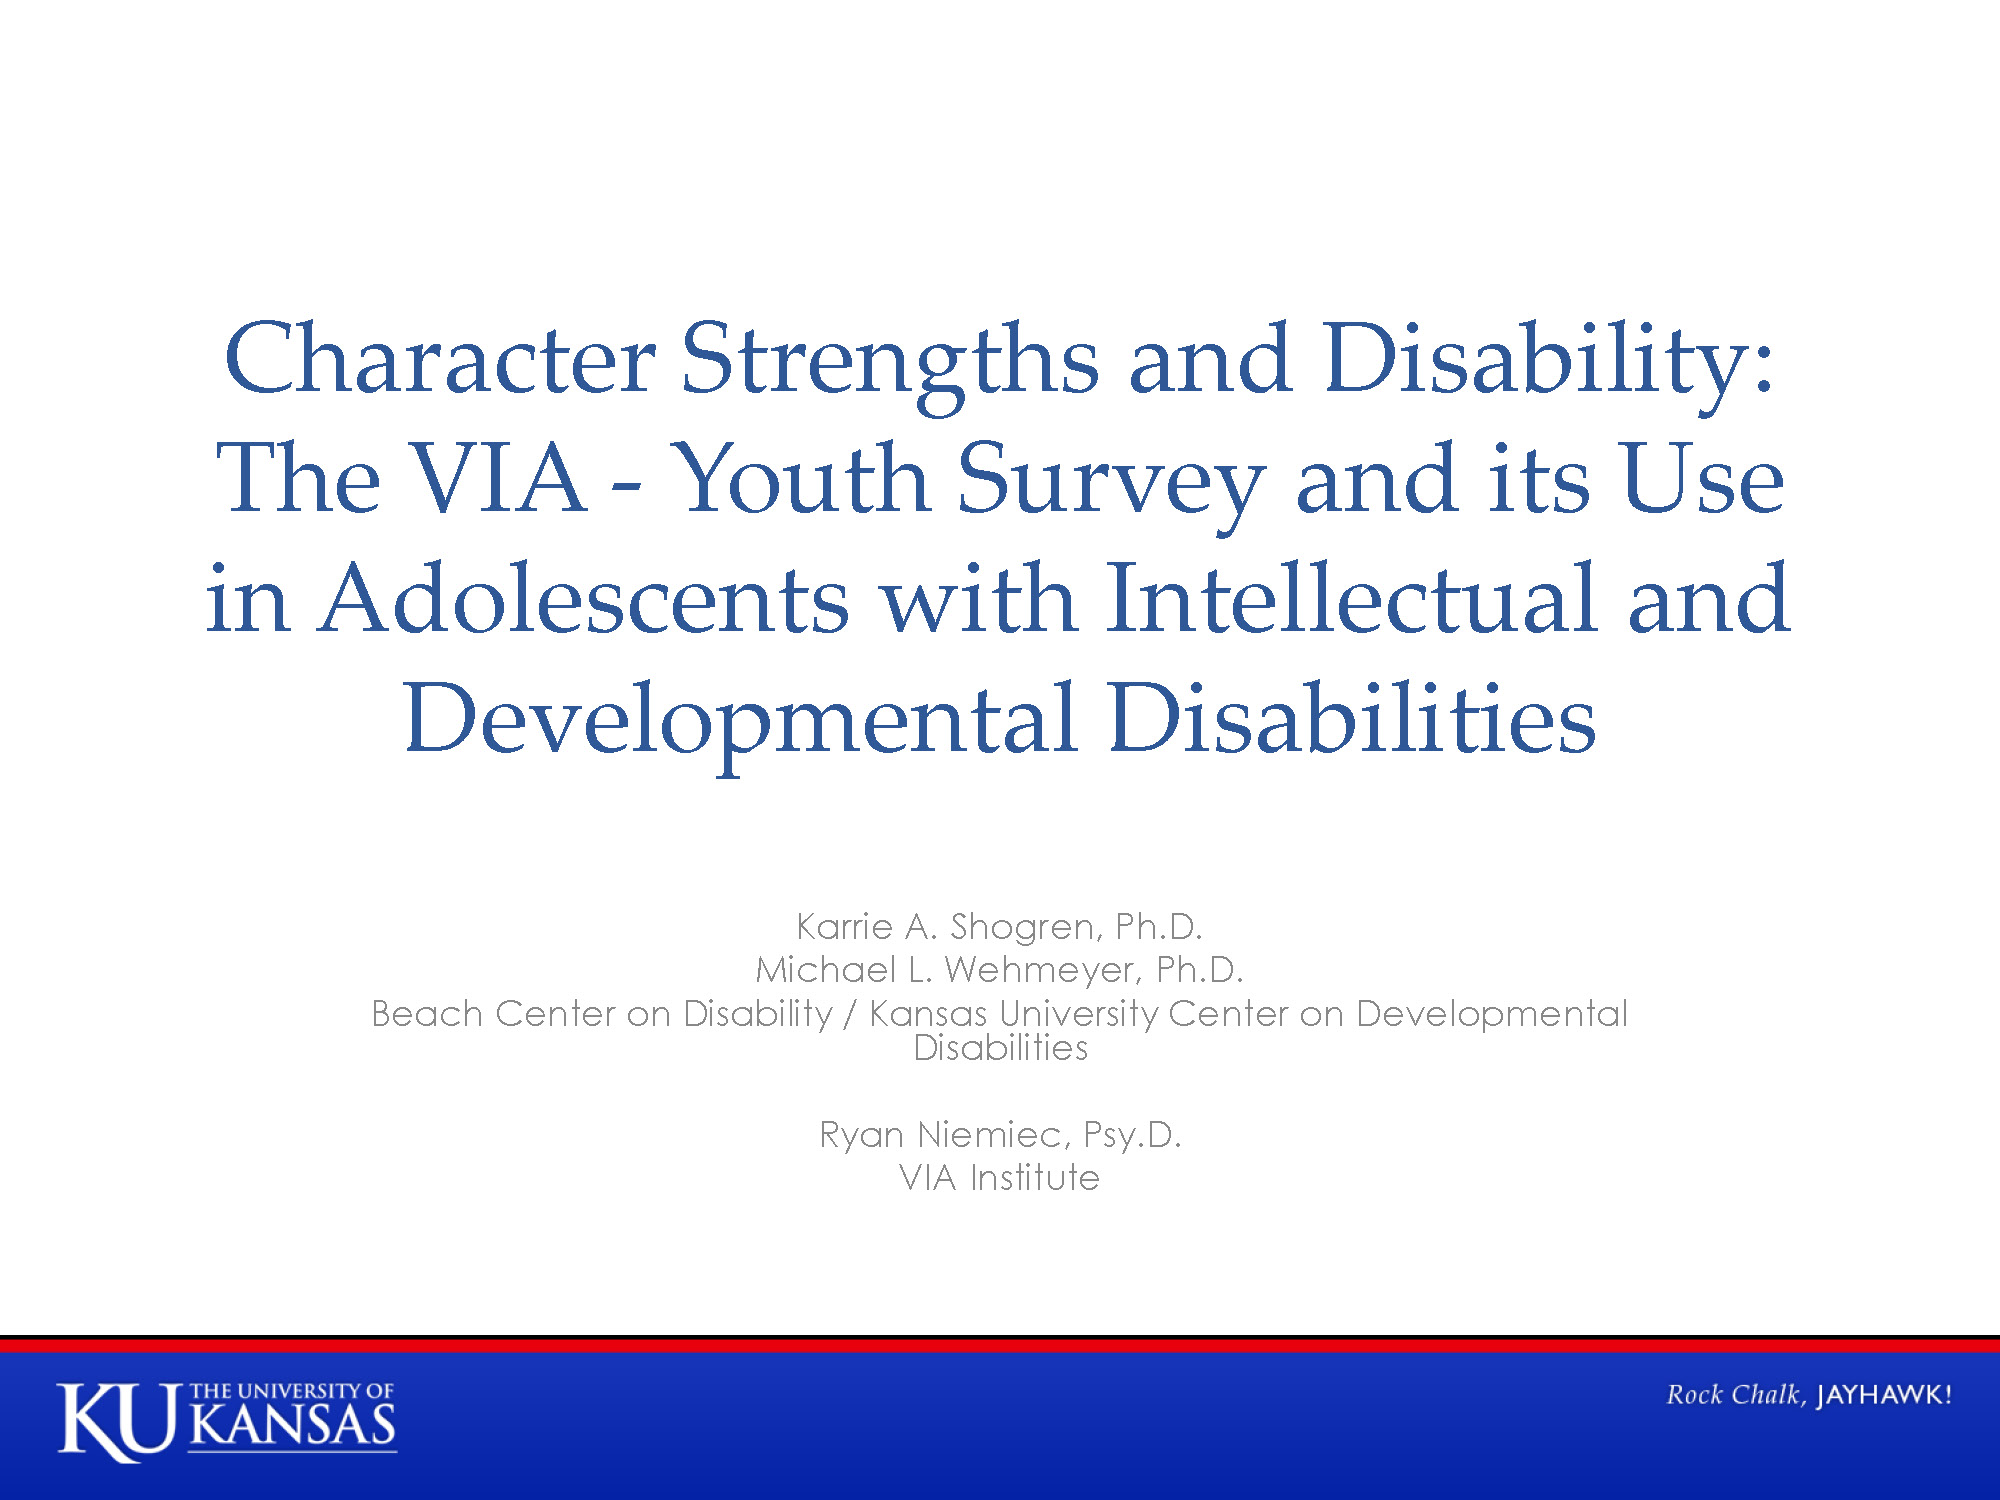 Pages from SY23.4 Character Strengths and Disability_Shogren